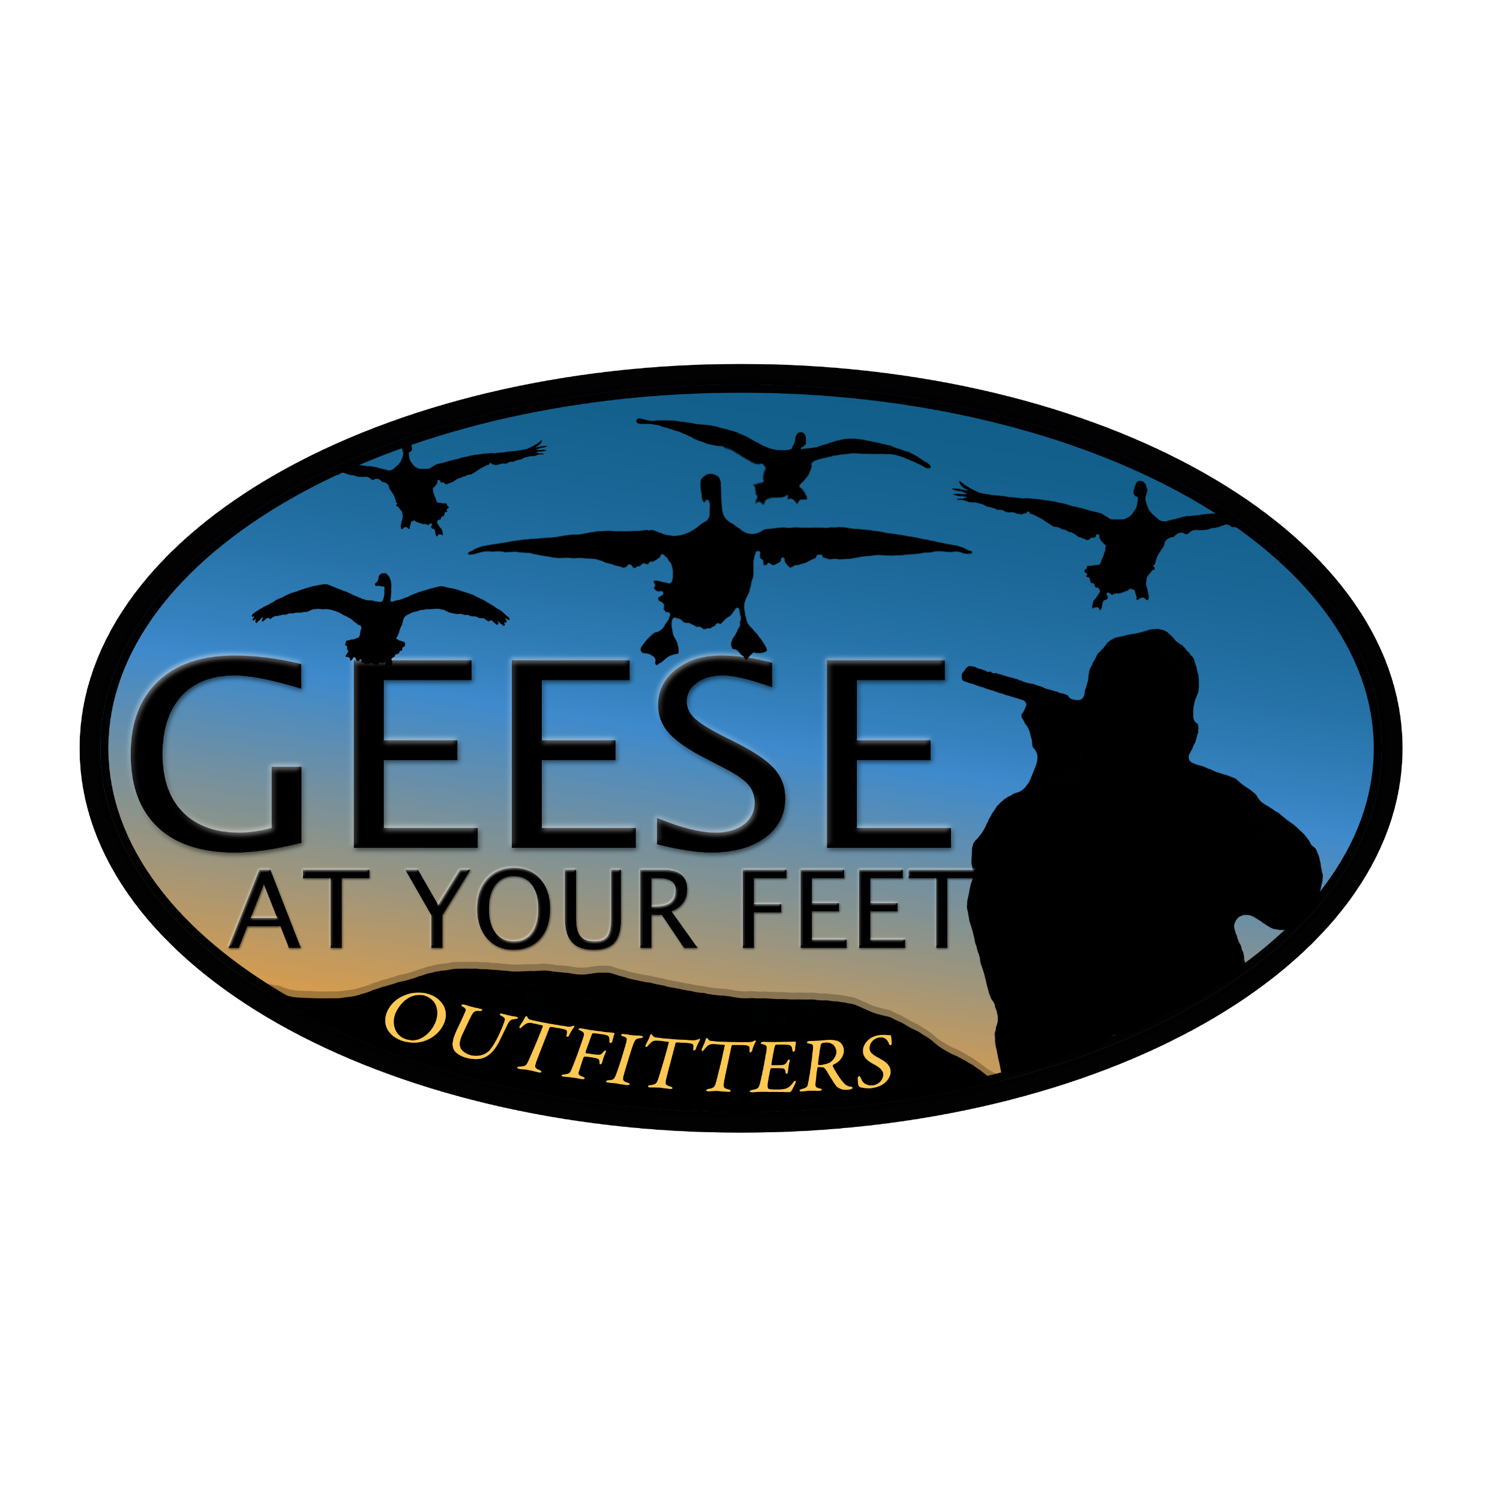 Geese at Your Feet Outfitters, Harrisburg, Pennsylvania, custom logo design